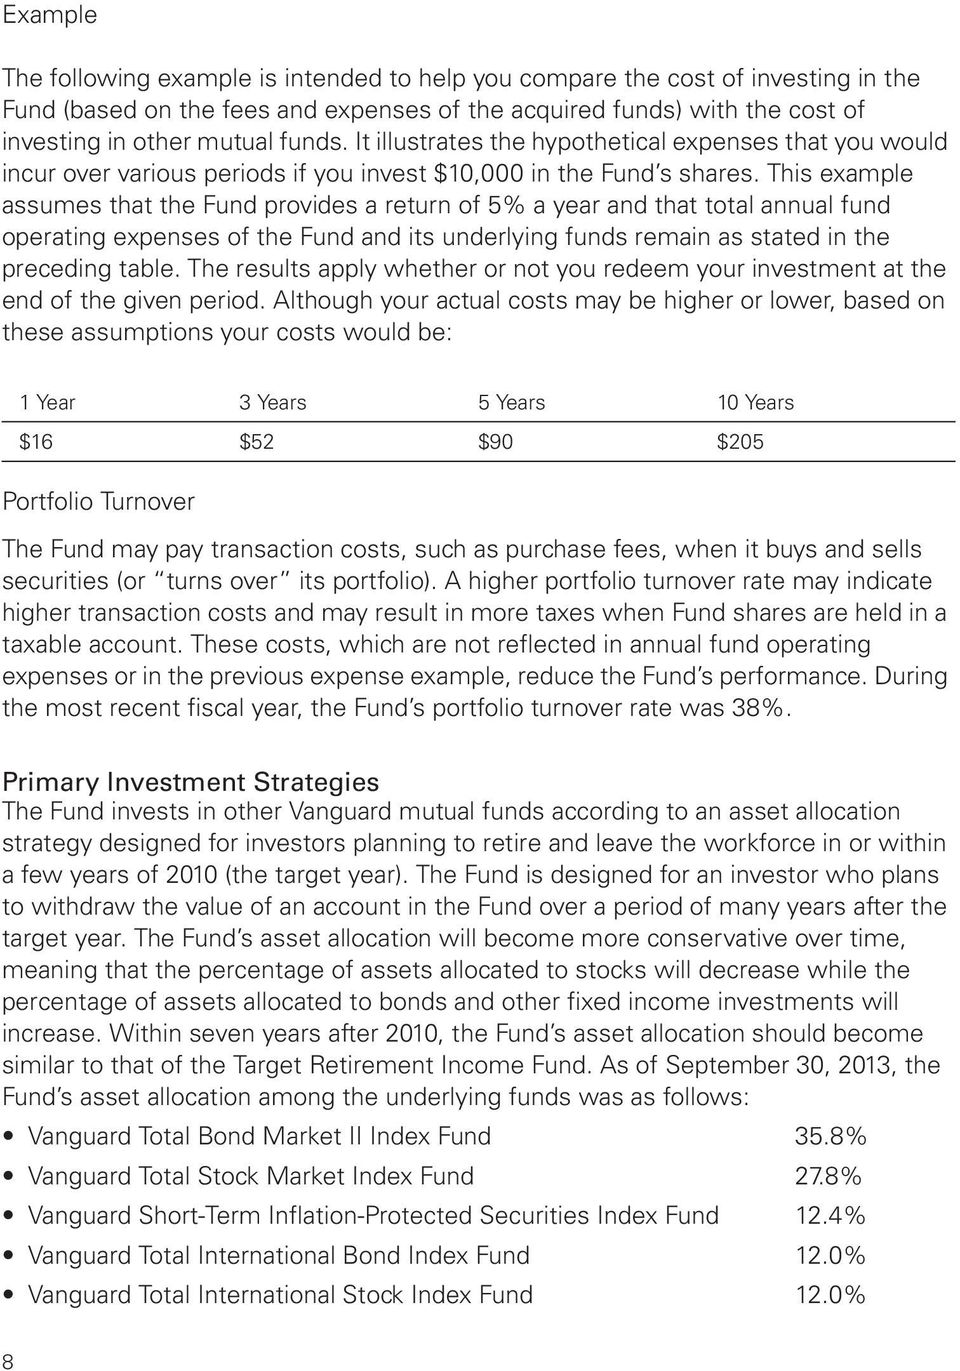 This example assumes that the Fund provides a return of 5% a year and that total annual fund operating expenses of the Fund and its underlying funds remain as stated in the preceding table.